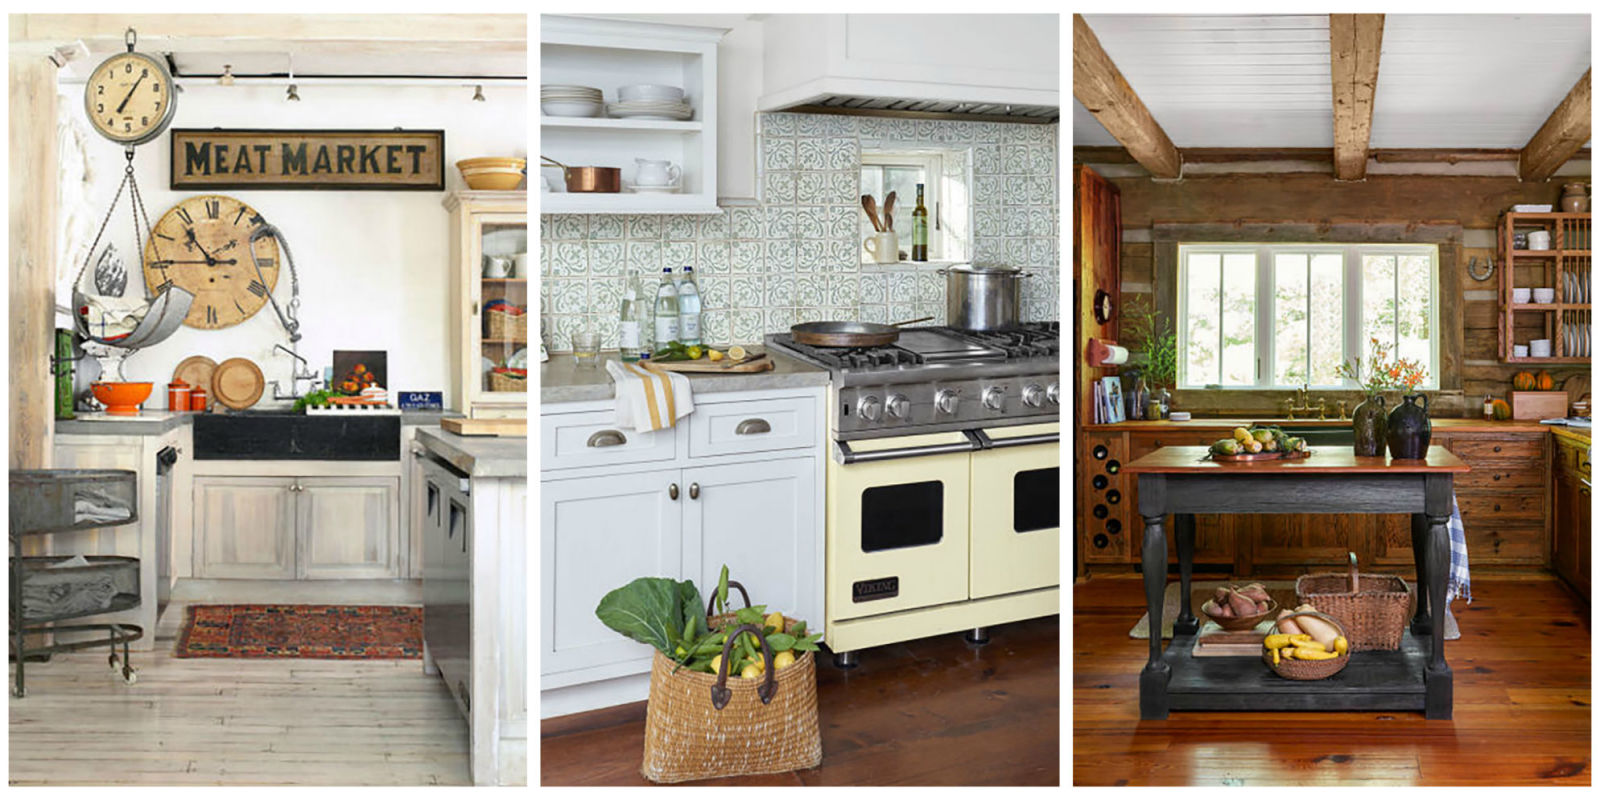 Country Style Decor 18 Farmhouse Style Kitchens Rustic Decor Ideas For Kitchens